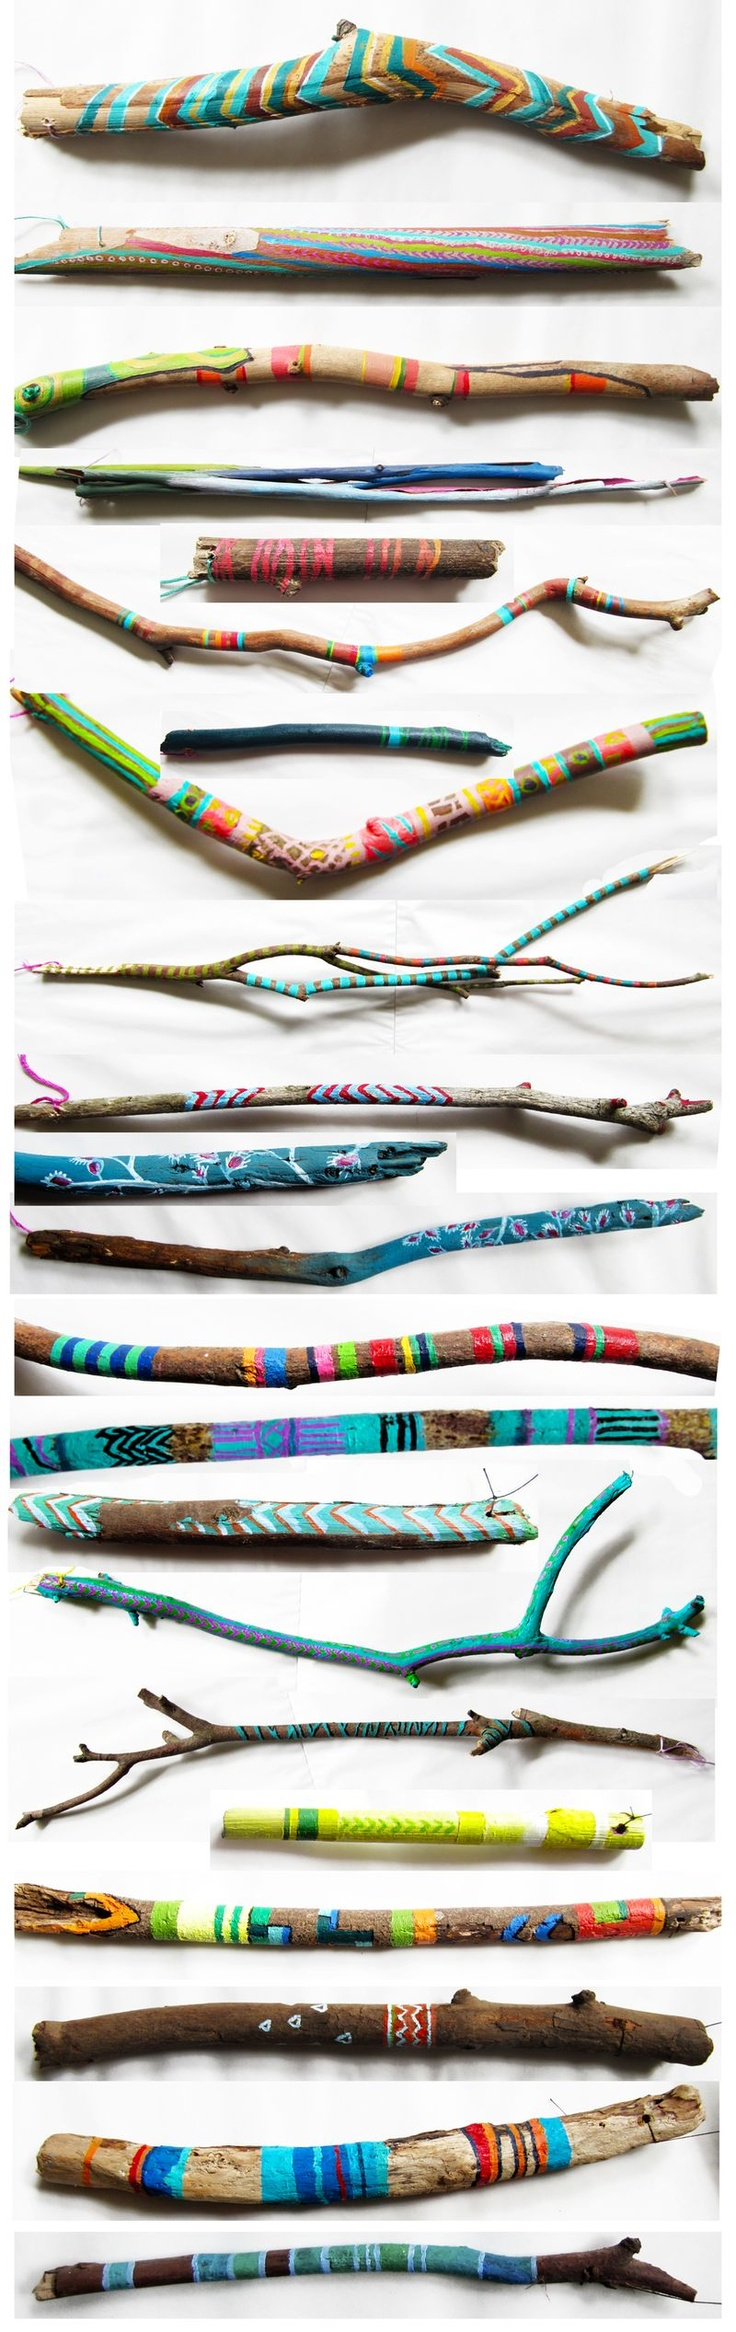 This may be the cheapest project...ever! What a wonderful way to add a pop of color. These would also make excellent homemade picture frames.